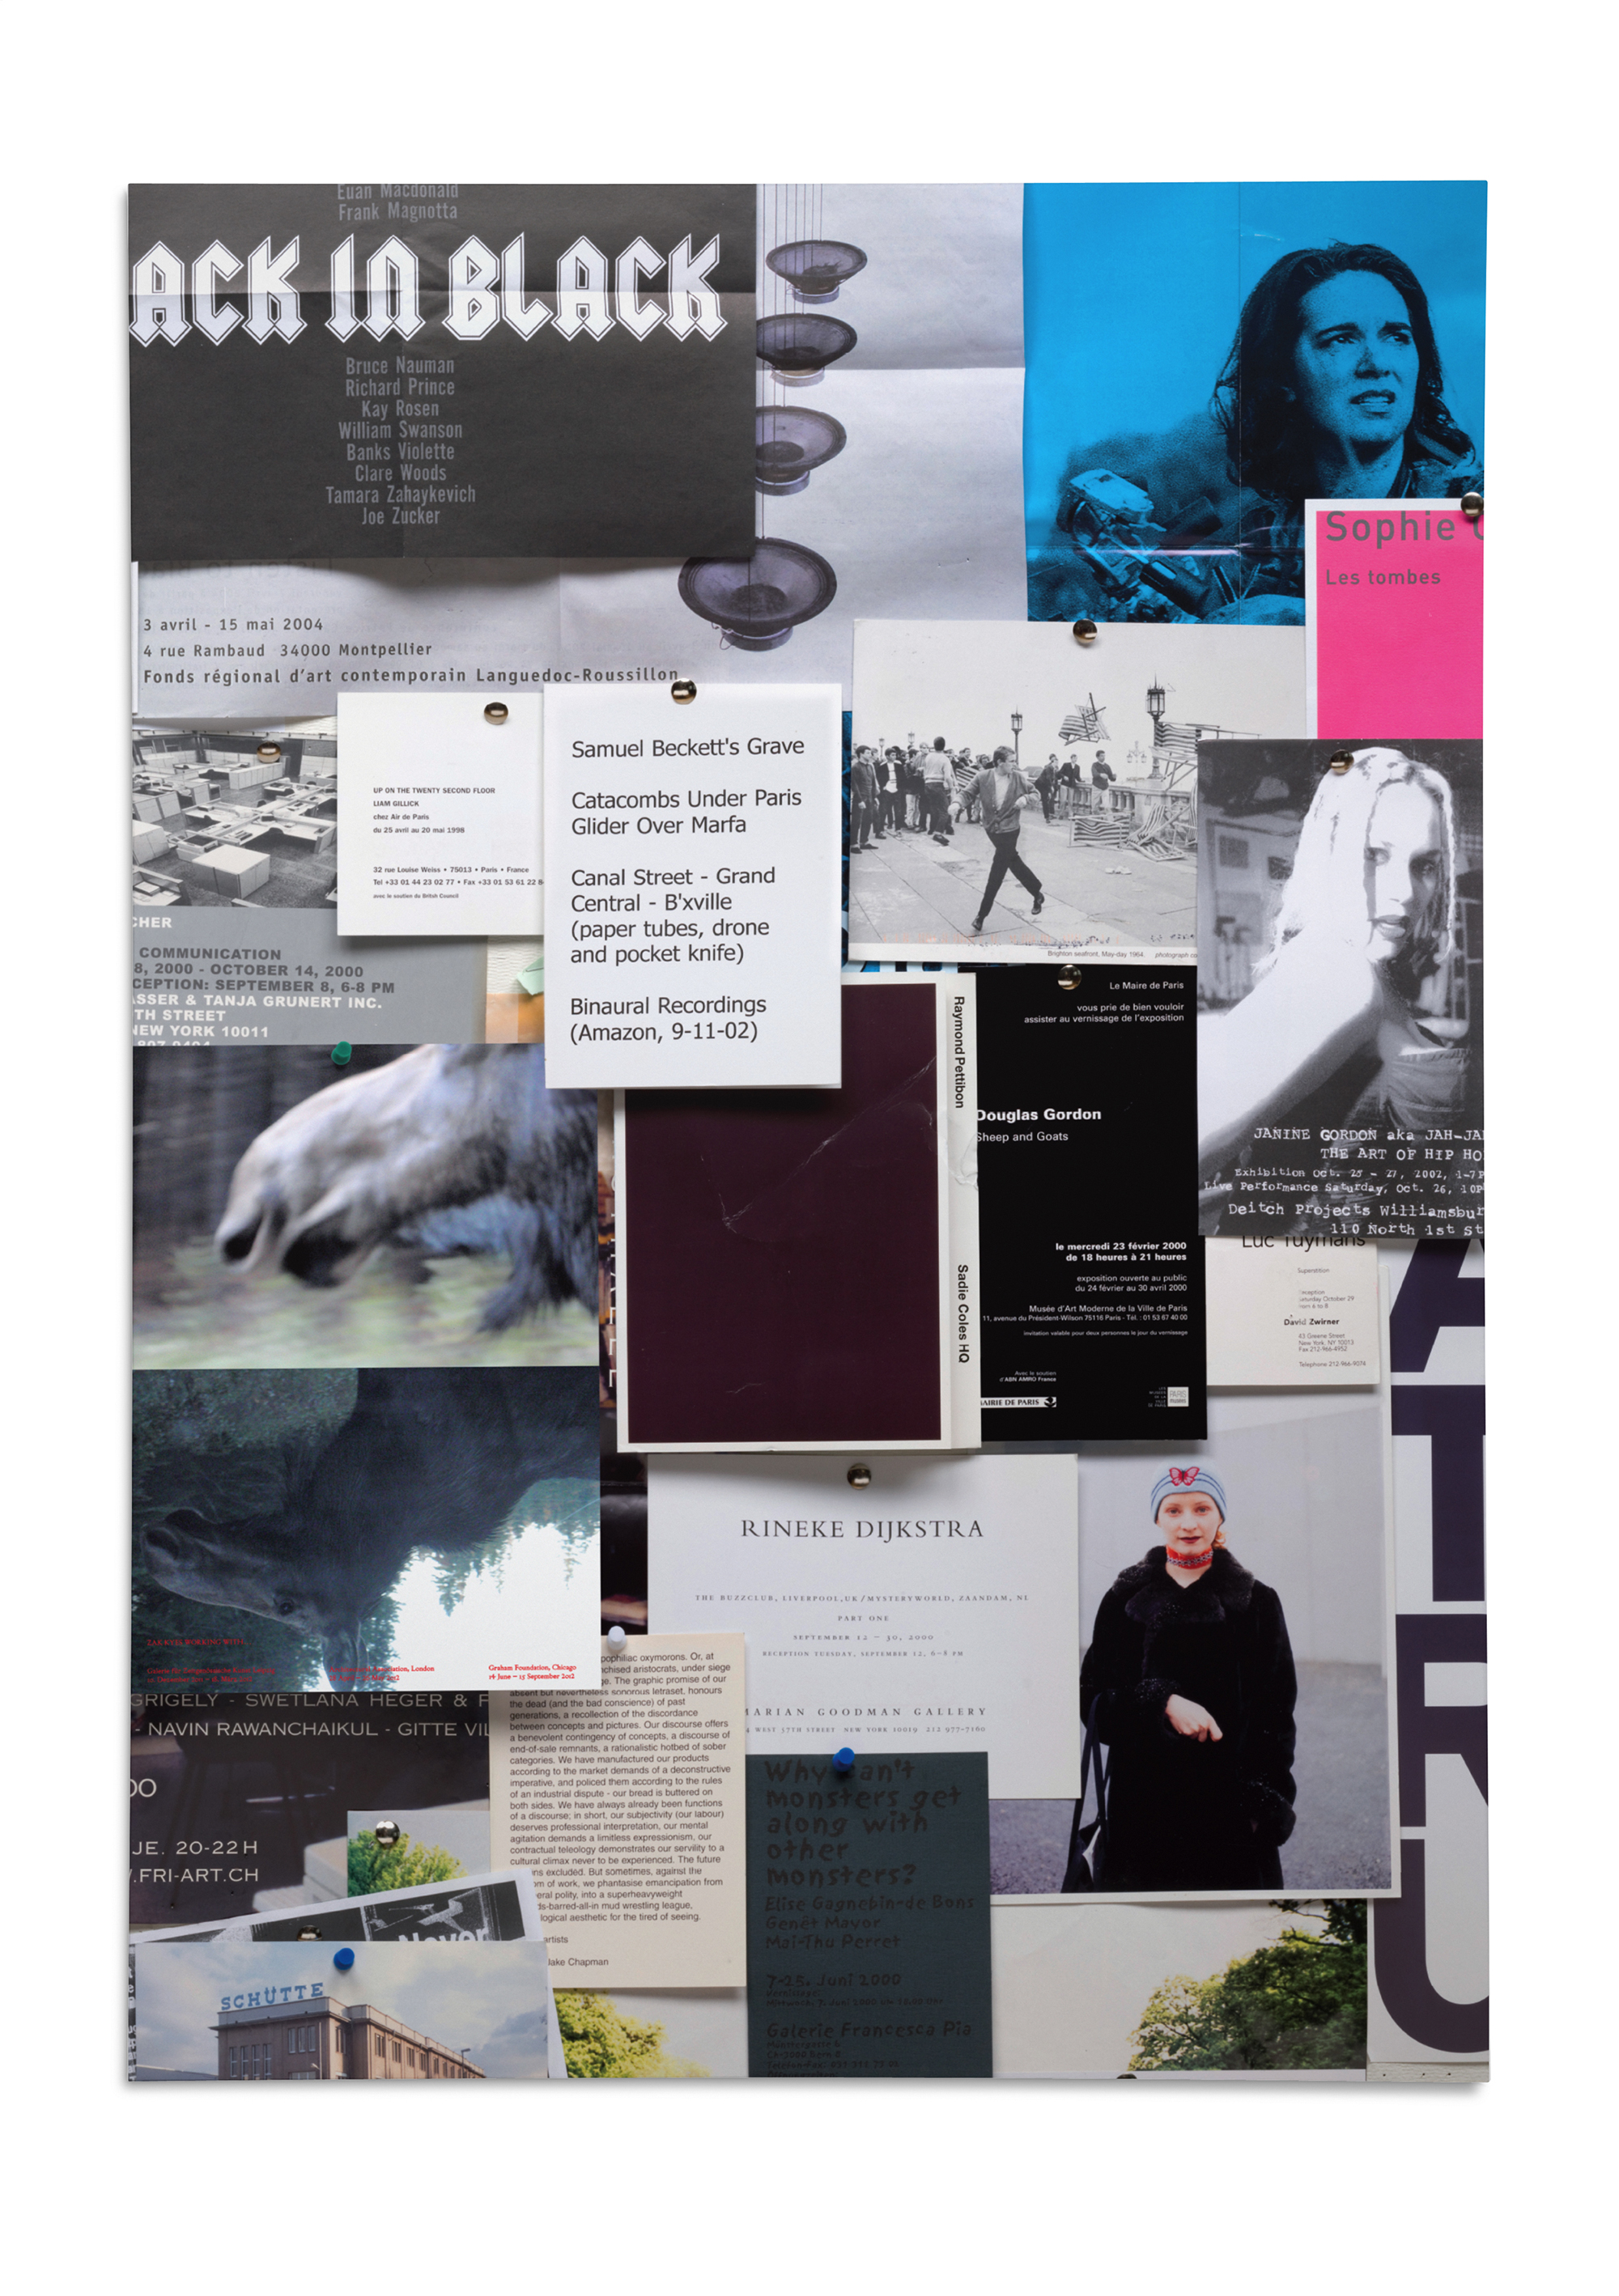 Cover image: Zak Kyes Working With… exhibition poster (2011)